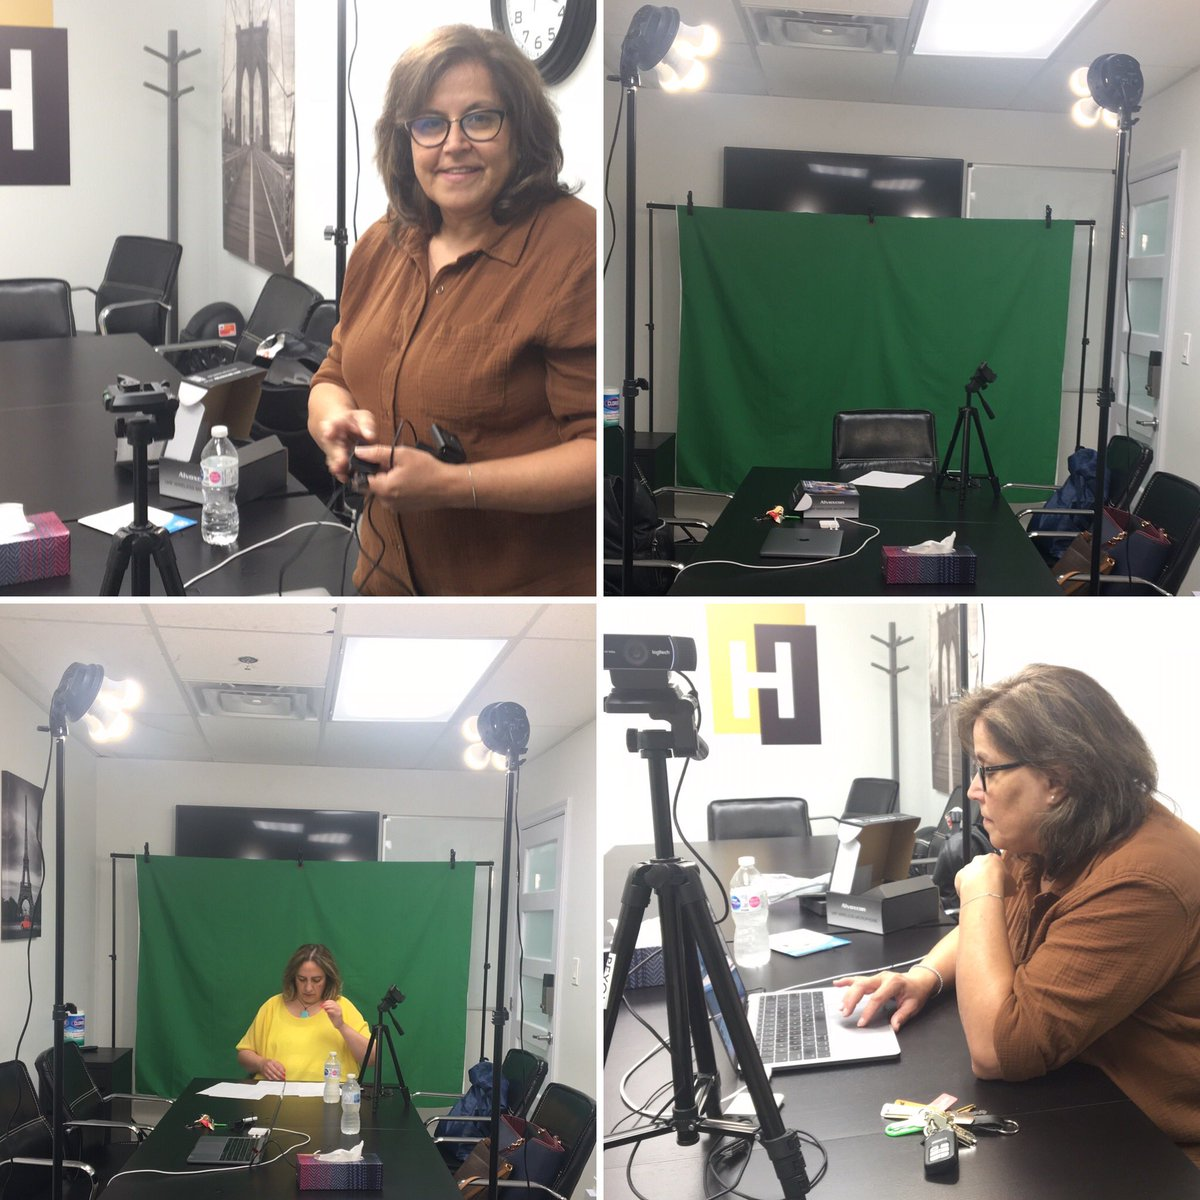 Recording at #HUDDLESPACE. Book our #boardroom for live-streaming your #events. pic.twitter.com/eXK1ytqVaX